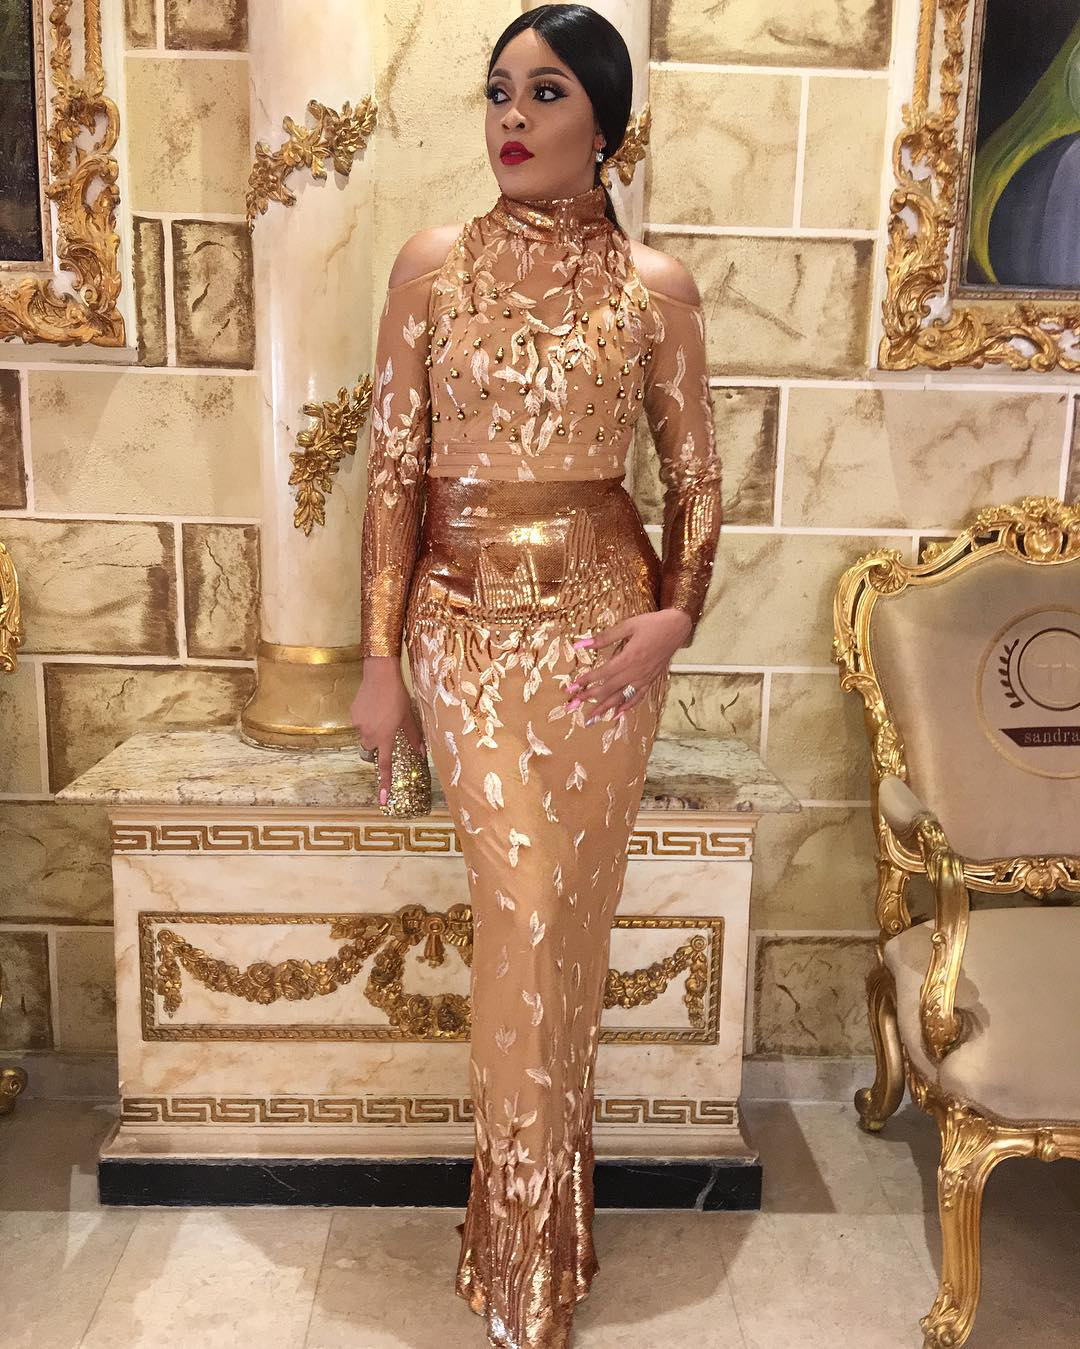 Turn Up Lite In Sexy And Stunning Aso Ebi Styles To Your Next Owambe Party